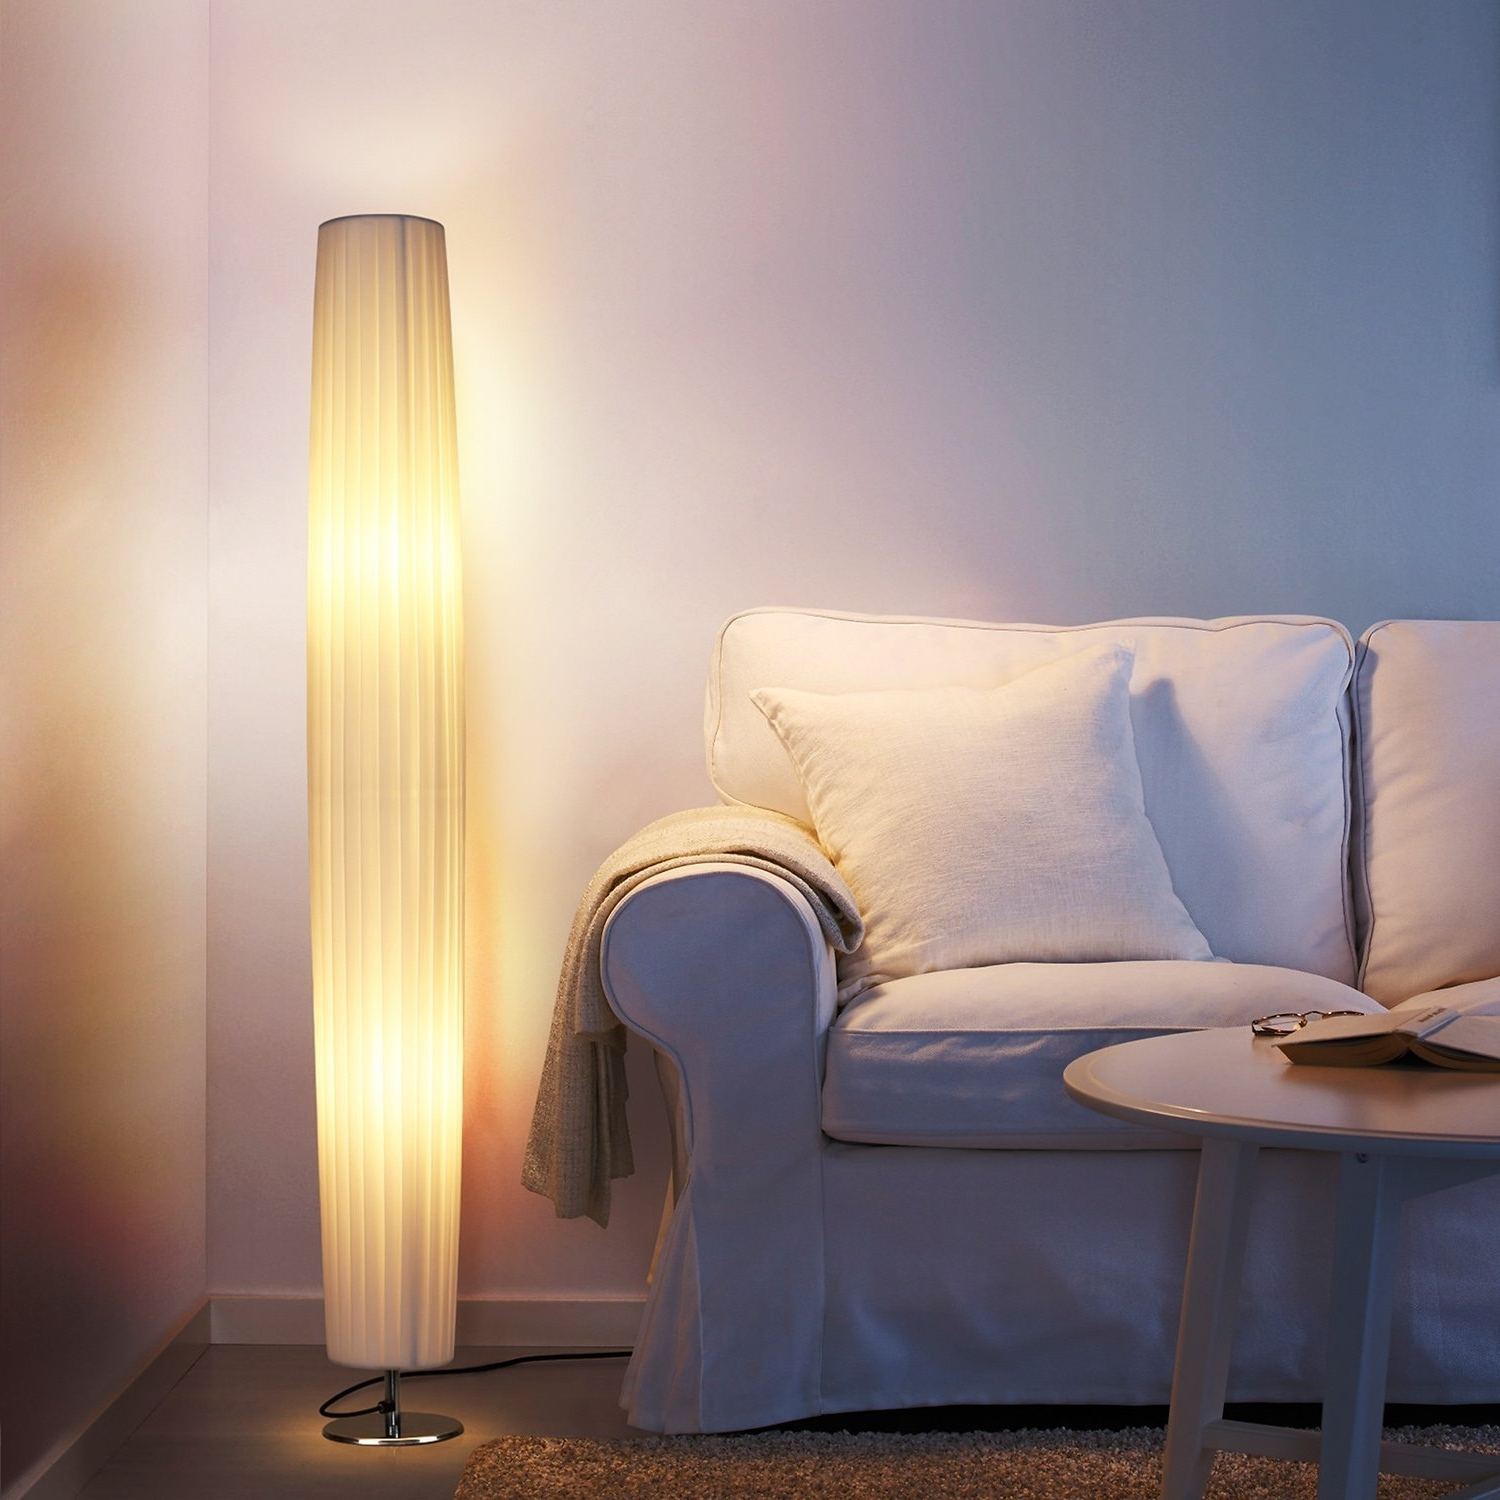 2019 Elegant Floor Lamps For Living Room 26 Modern Lamp And Ceiling Within Elegant Living Room Table Lamps (View 20 of 20)